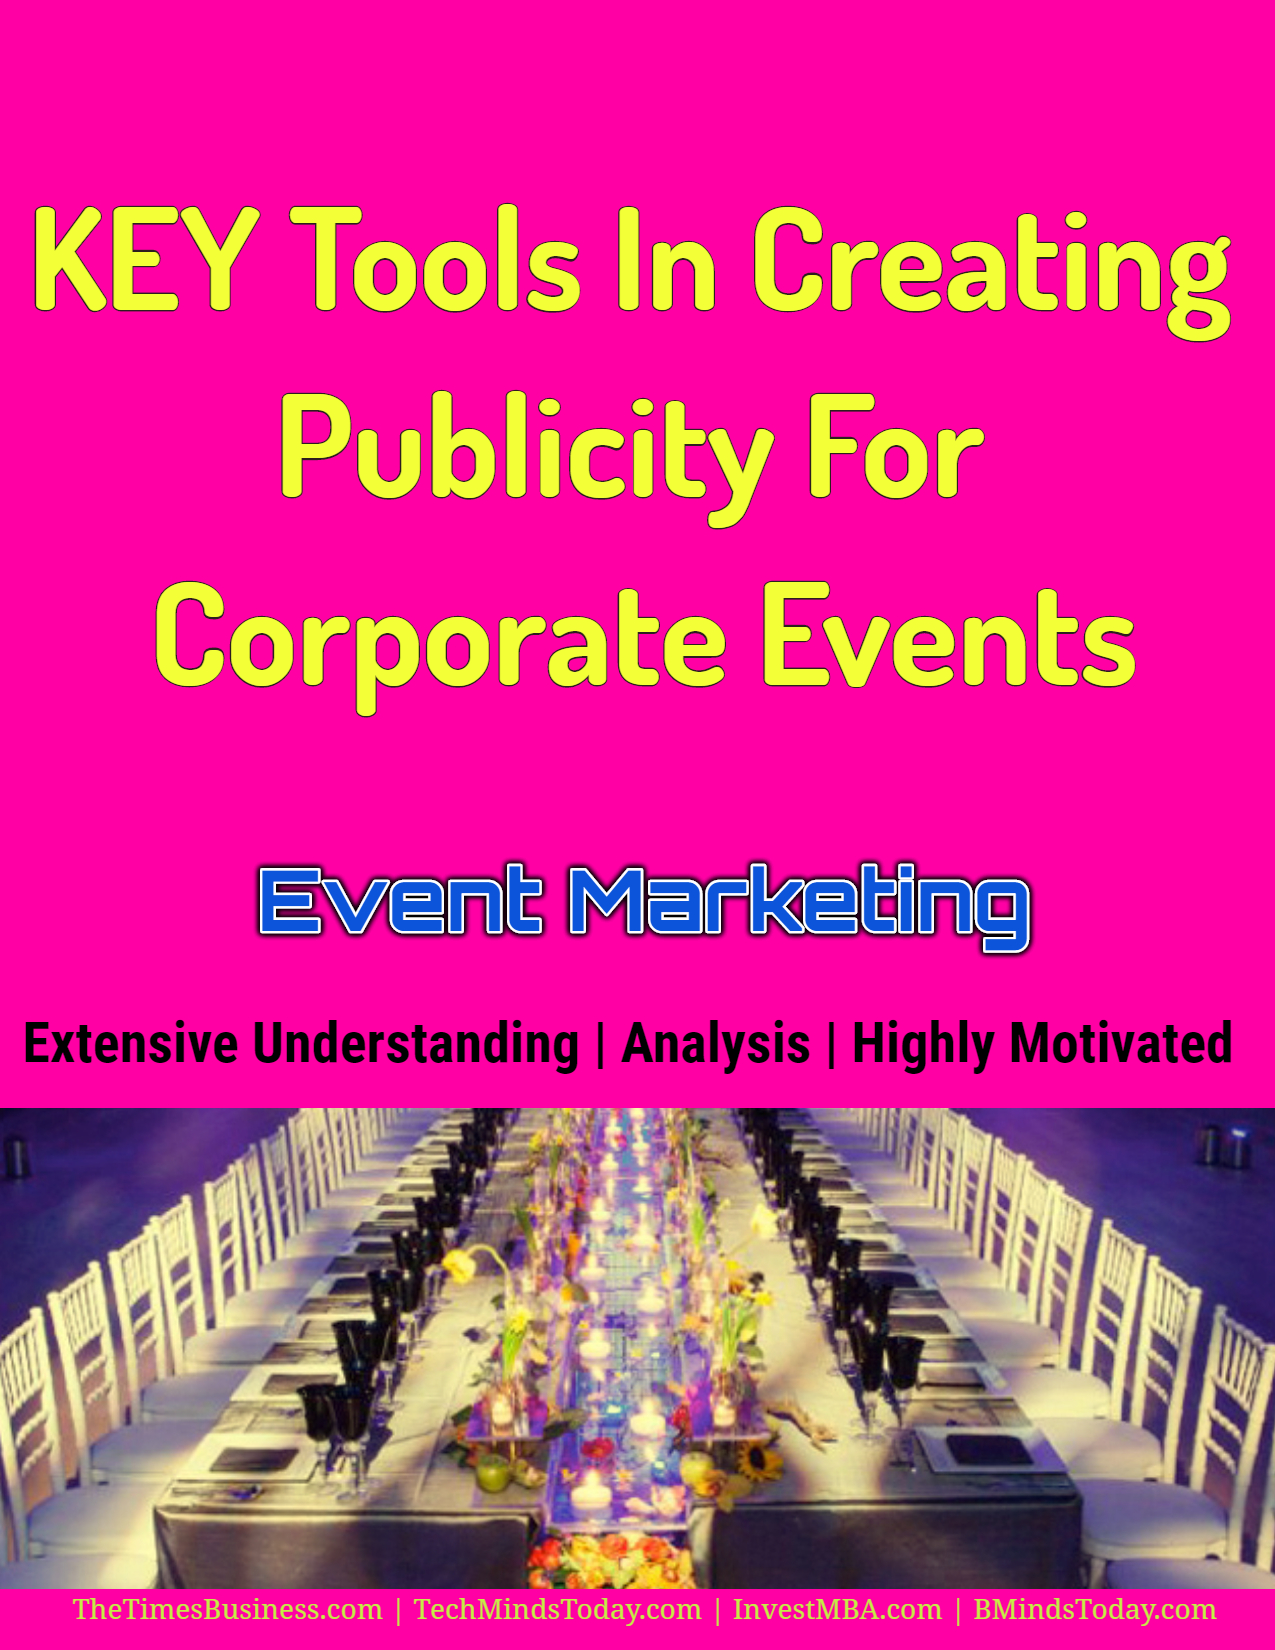 SEVEN Tools In Creating Publicity For Corporate Events